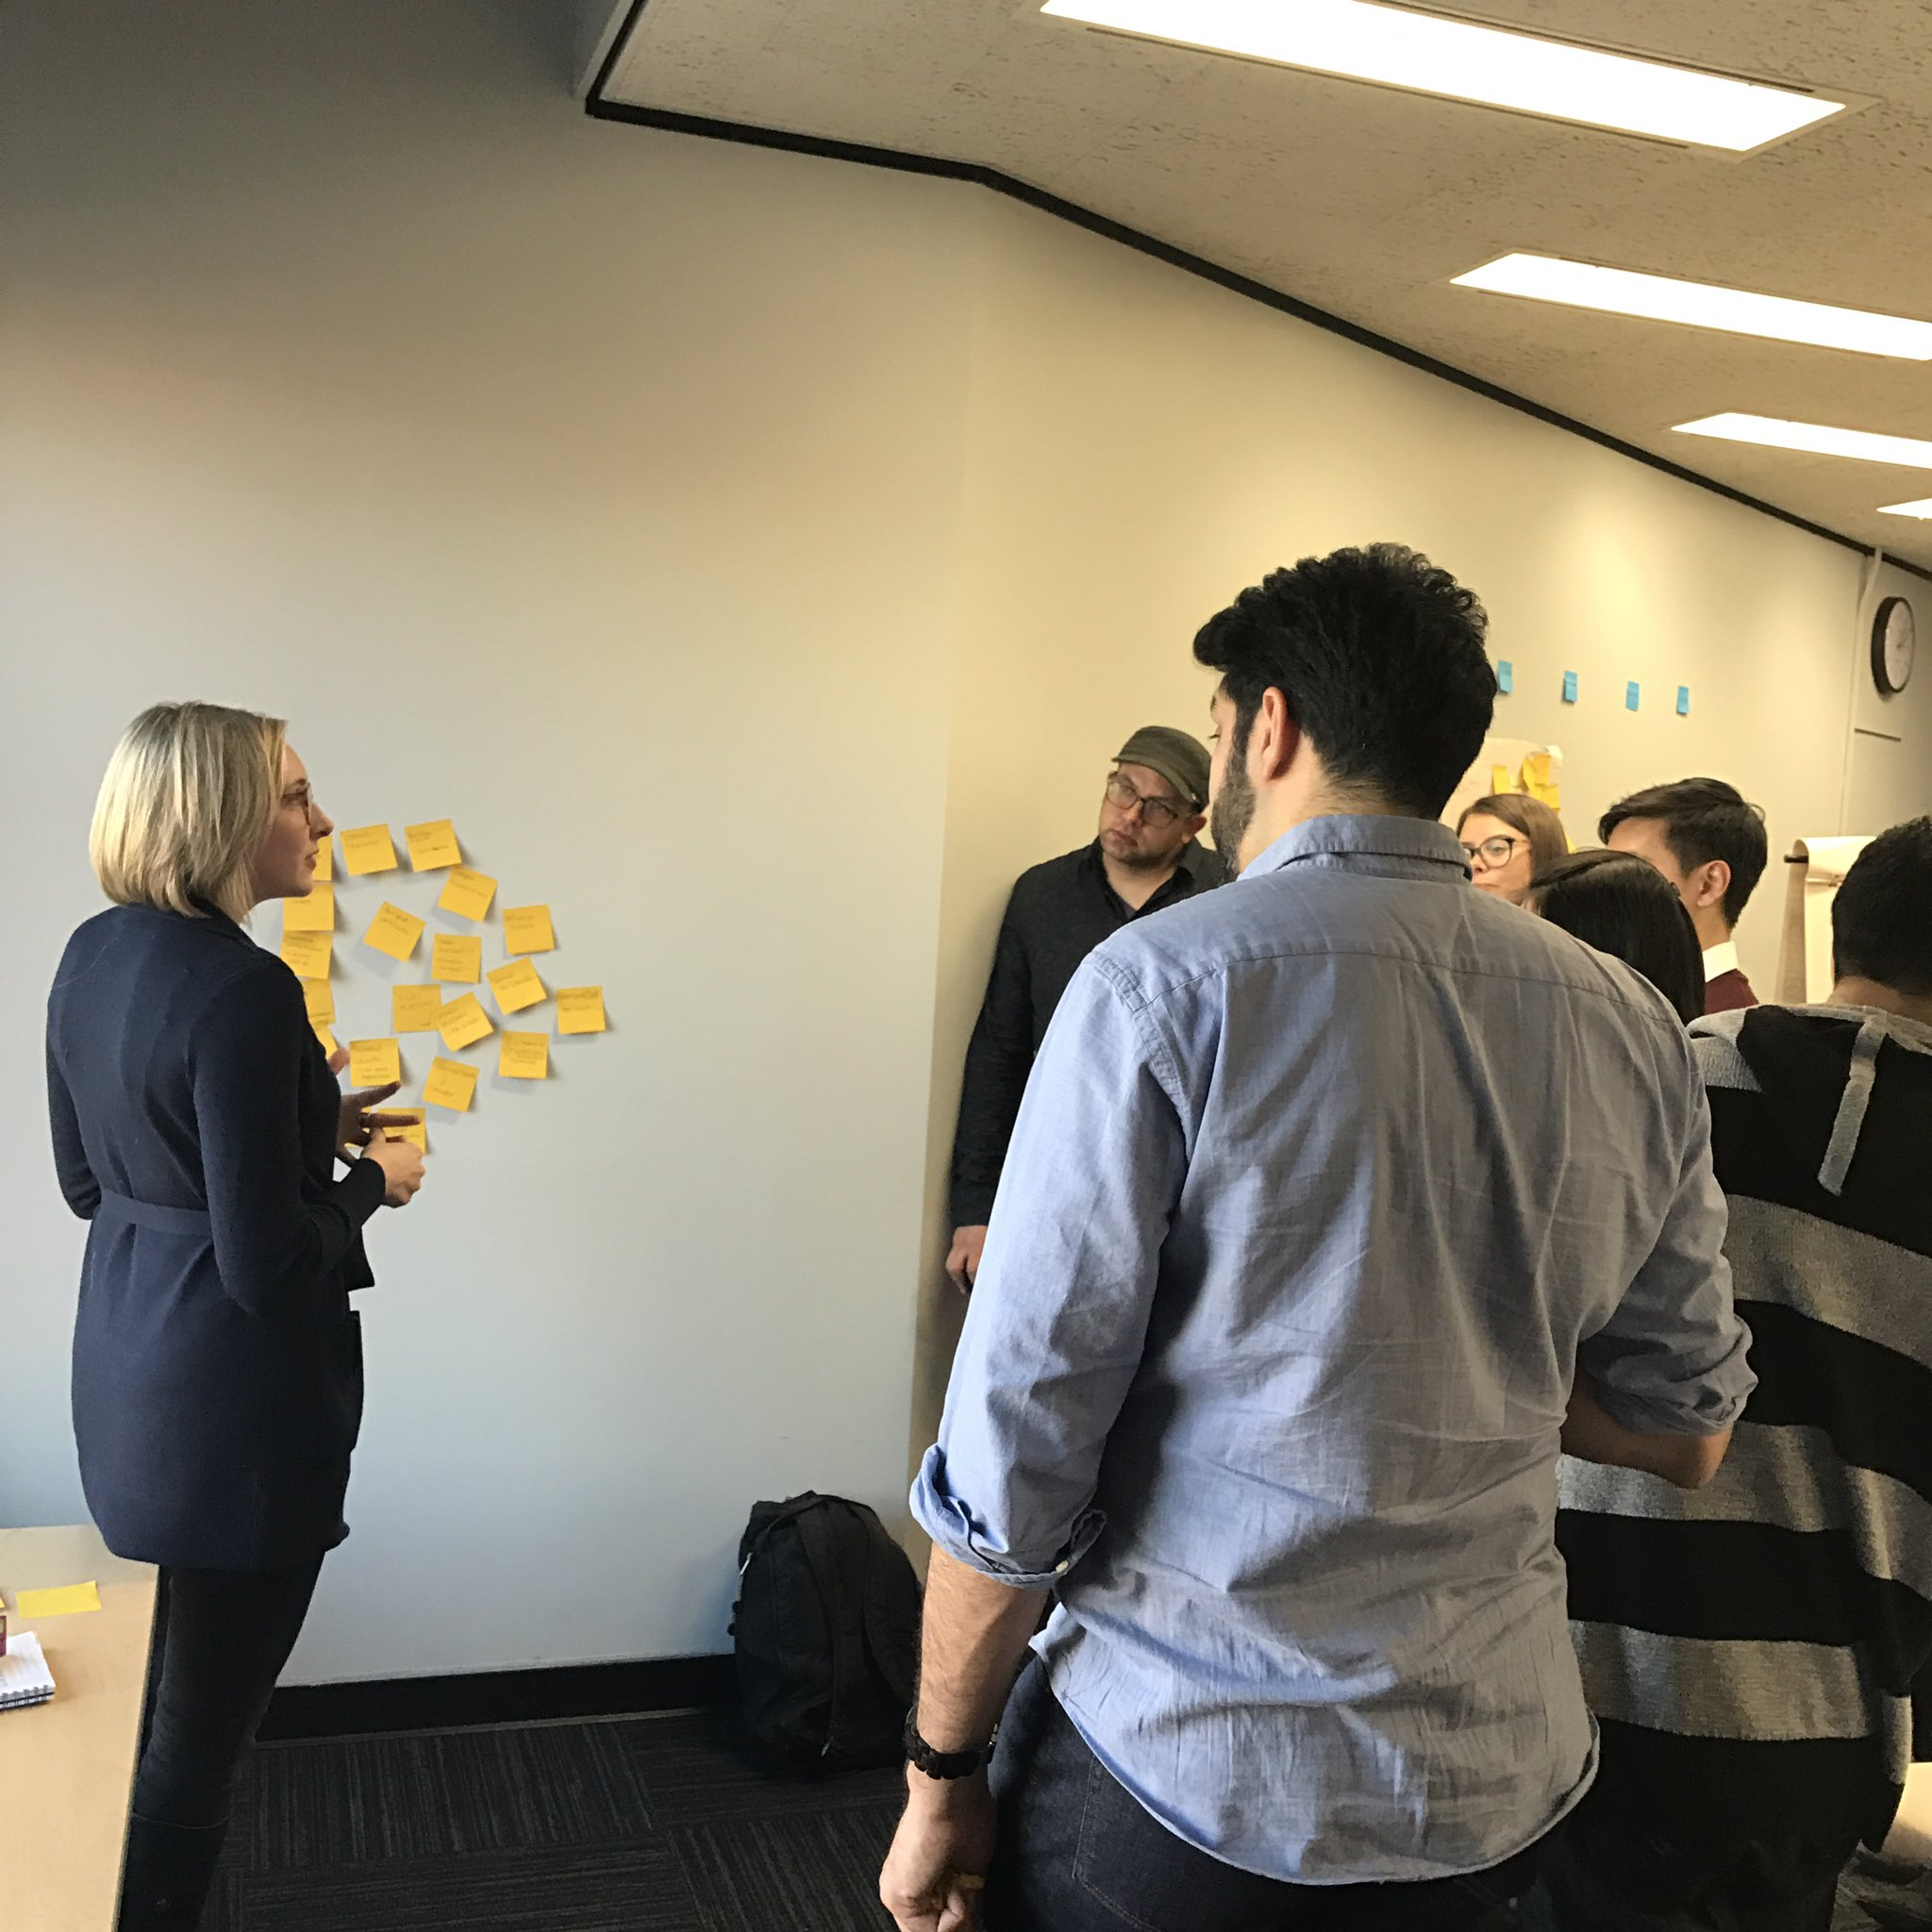 Reviewing breakout group work to strategize ways #highereducation should adapt to changing world at #CodeAcrossTO https://t.co/uY6JkmGqSI